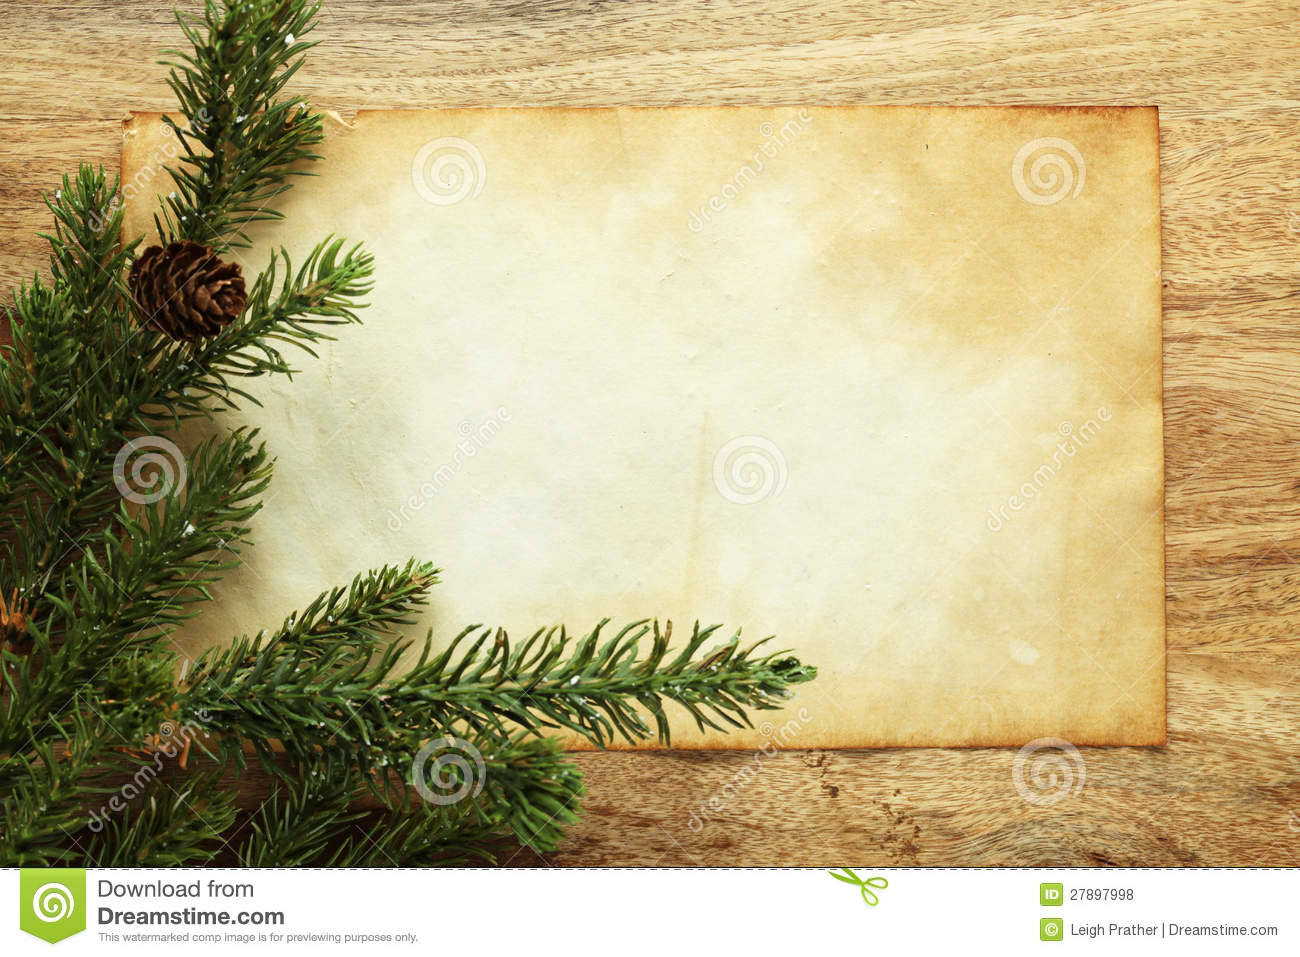 Blank Paper And Christmas Decorations Stock Photo - Image of blank ...